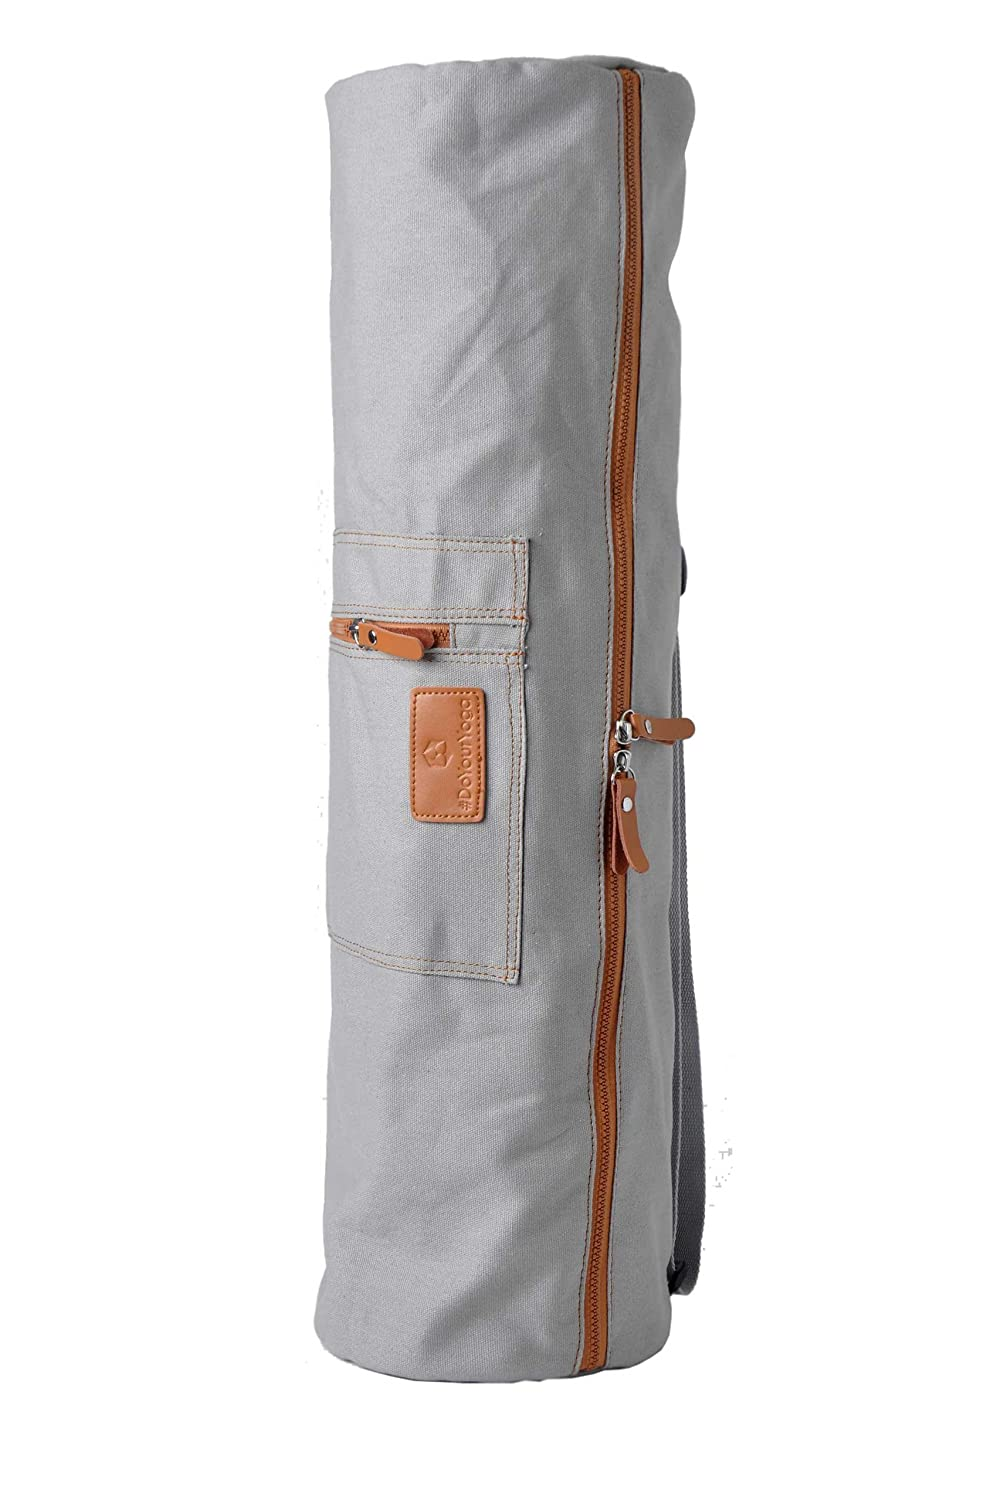 For extra large/yoga mats/up to a size/of 186 x 63 x 0.6 cm /Multi-Functional Storage Pocket/ #DoYourYoga Yoga mat bag /»Sunita/« from 100/% cotton available in 9 beautiful colours.